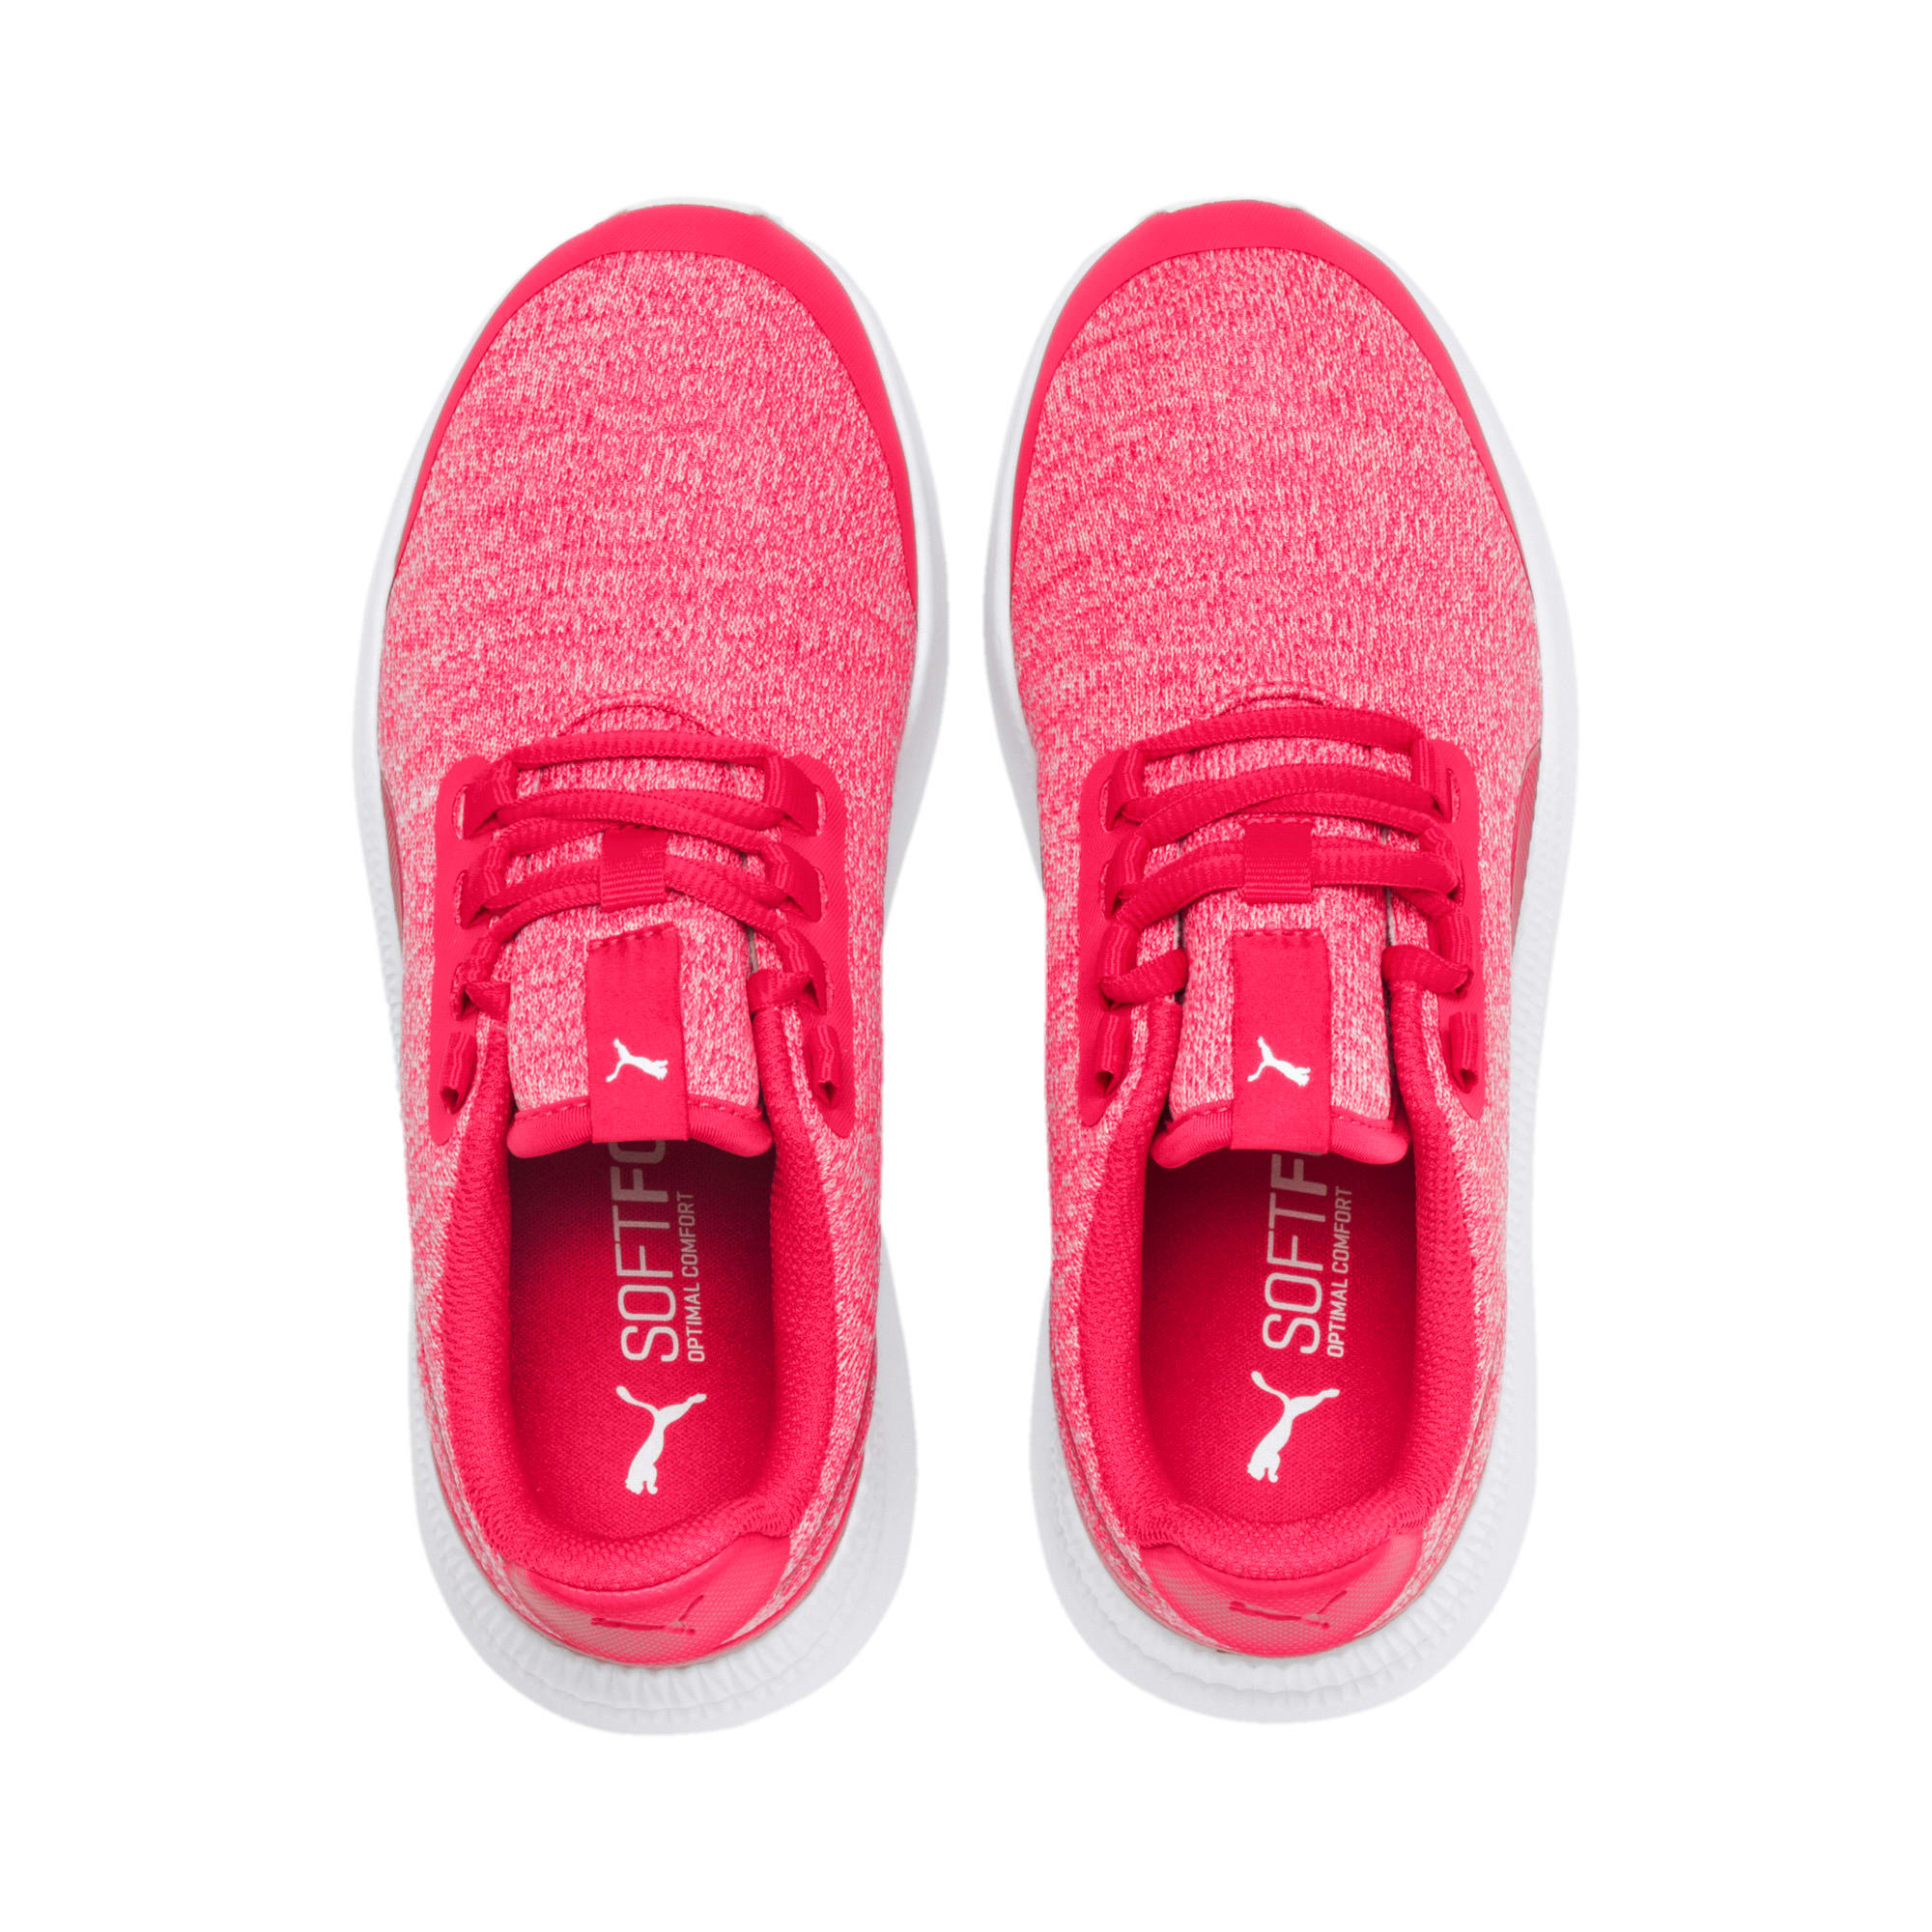 Thumbnail 6 of Pacer Next FS Knit Kinder Sneaker, Nrgy Rose-Puma White, medium